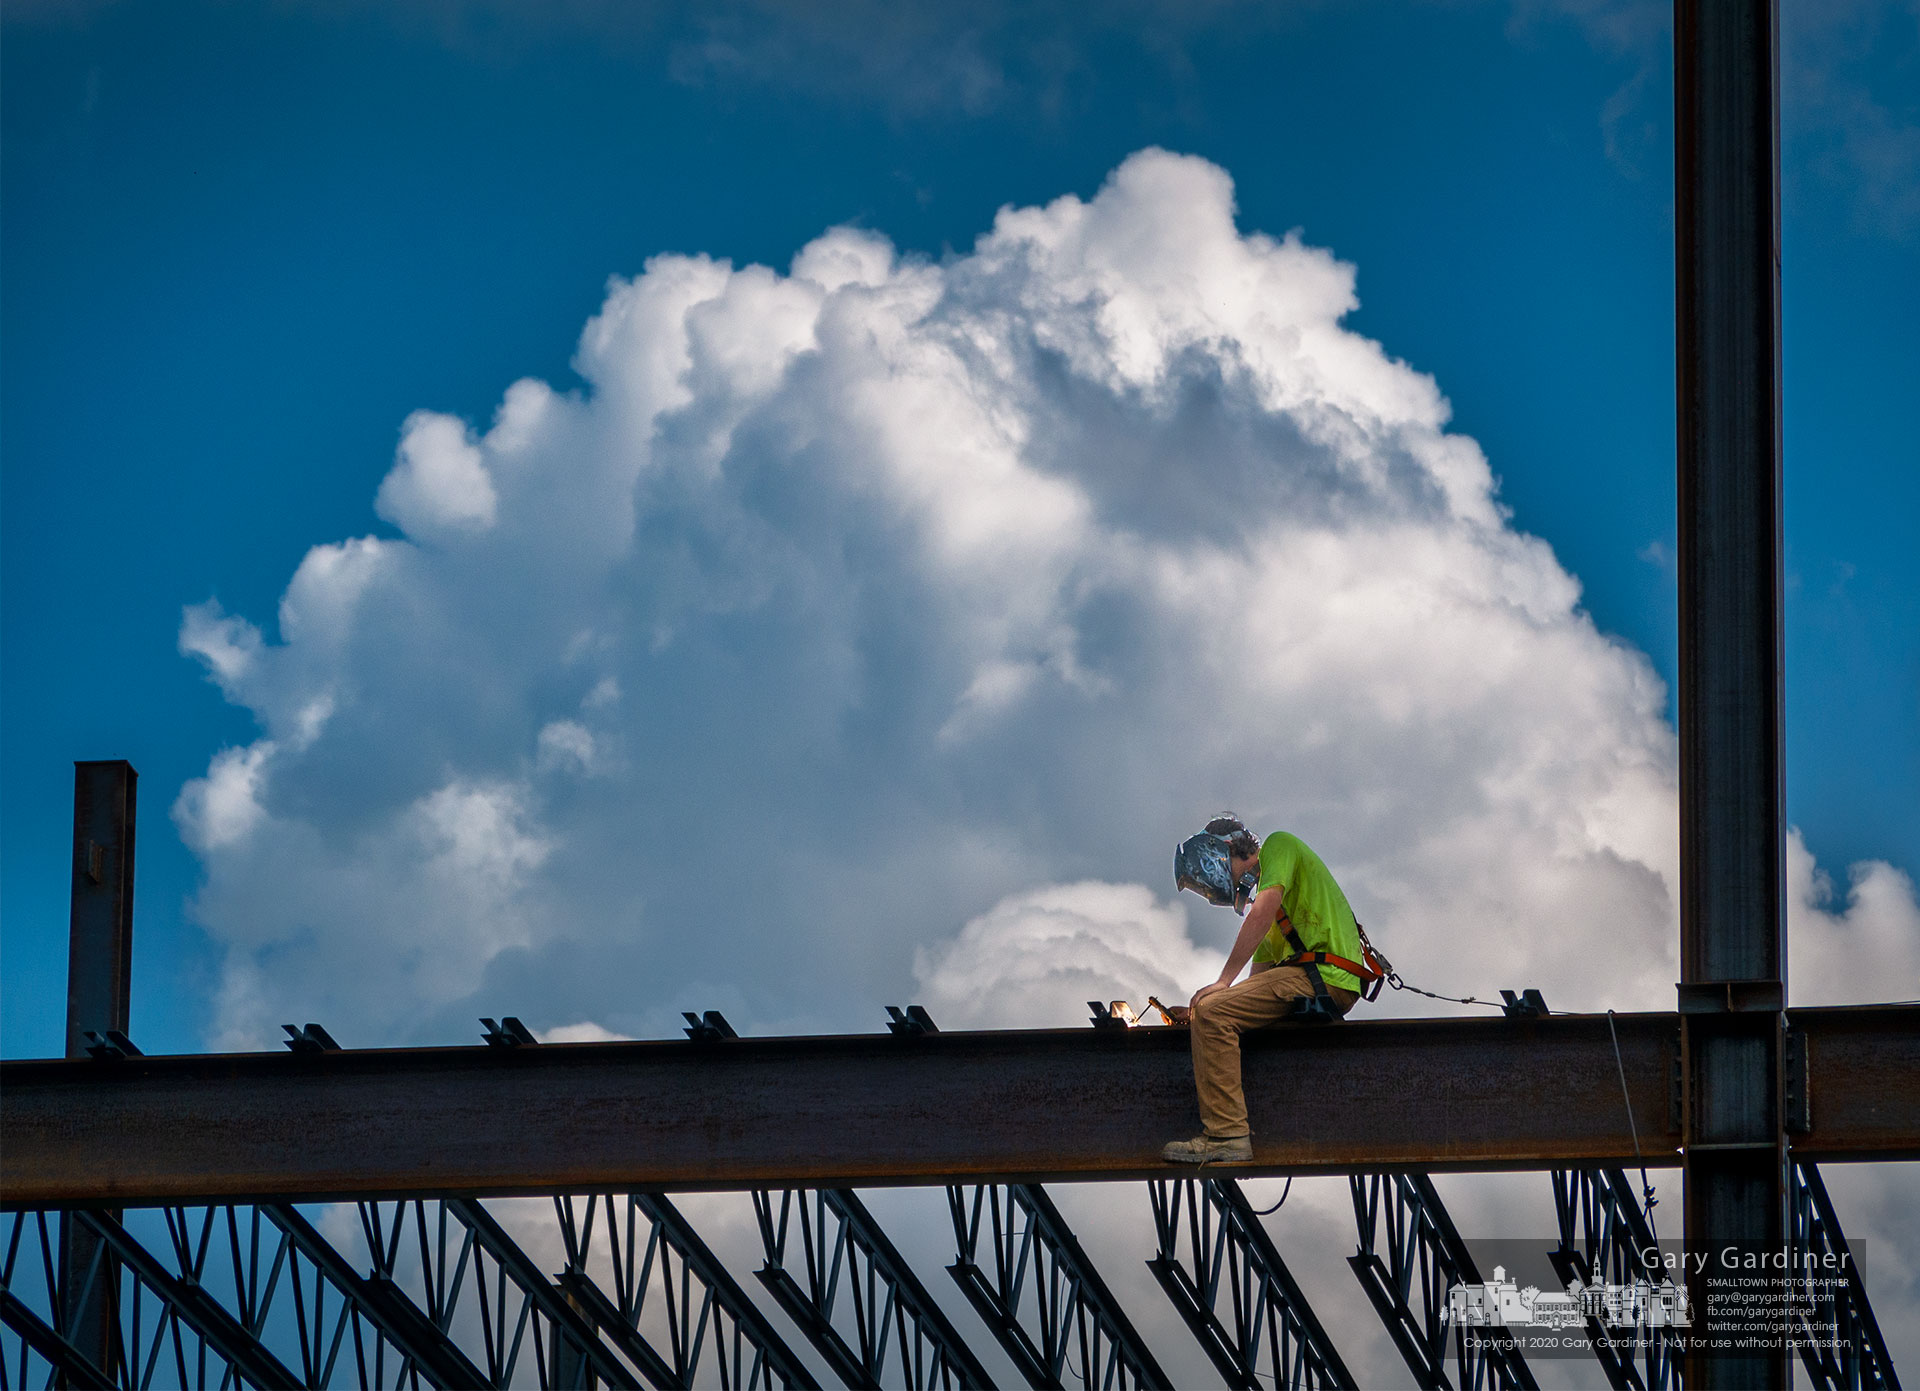 A welder attaches trusses to the steel structure defining the COPC senior treatment facility being built behind the company's other two buildings on Africa Road. My Final Photo for Sept. 8, 2020.